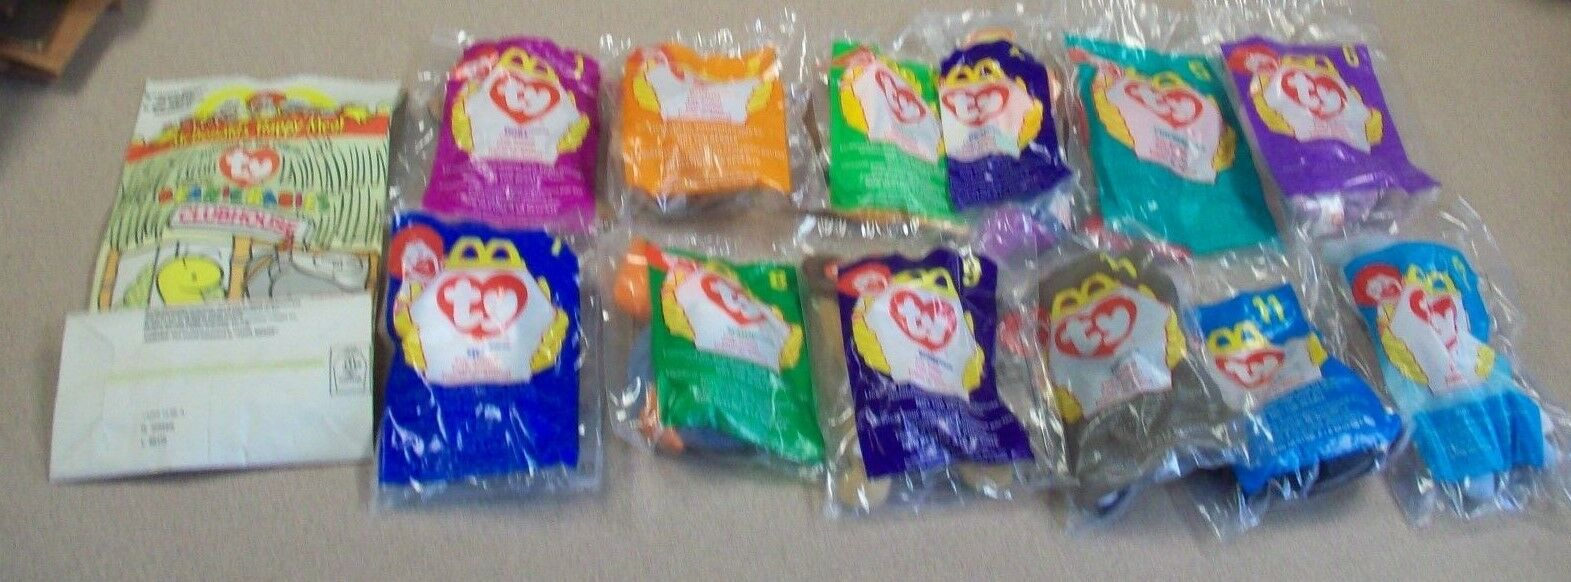 199 McDonald TY Beanie Babies Complete Set 1-12 with Unused Happy Meal Bag